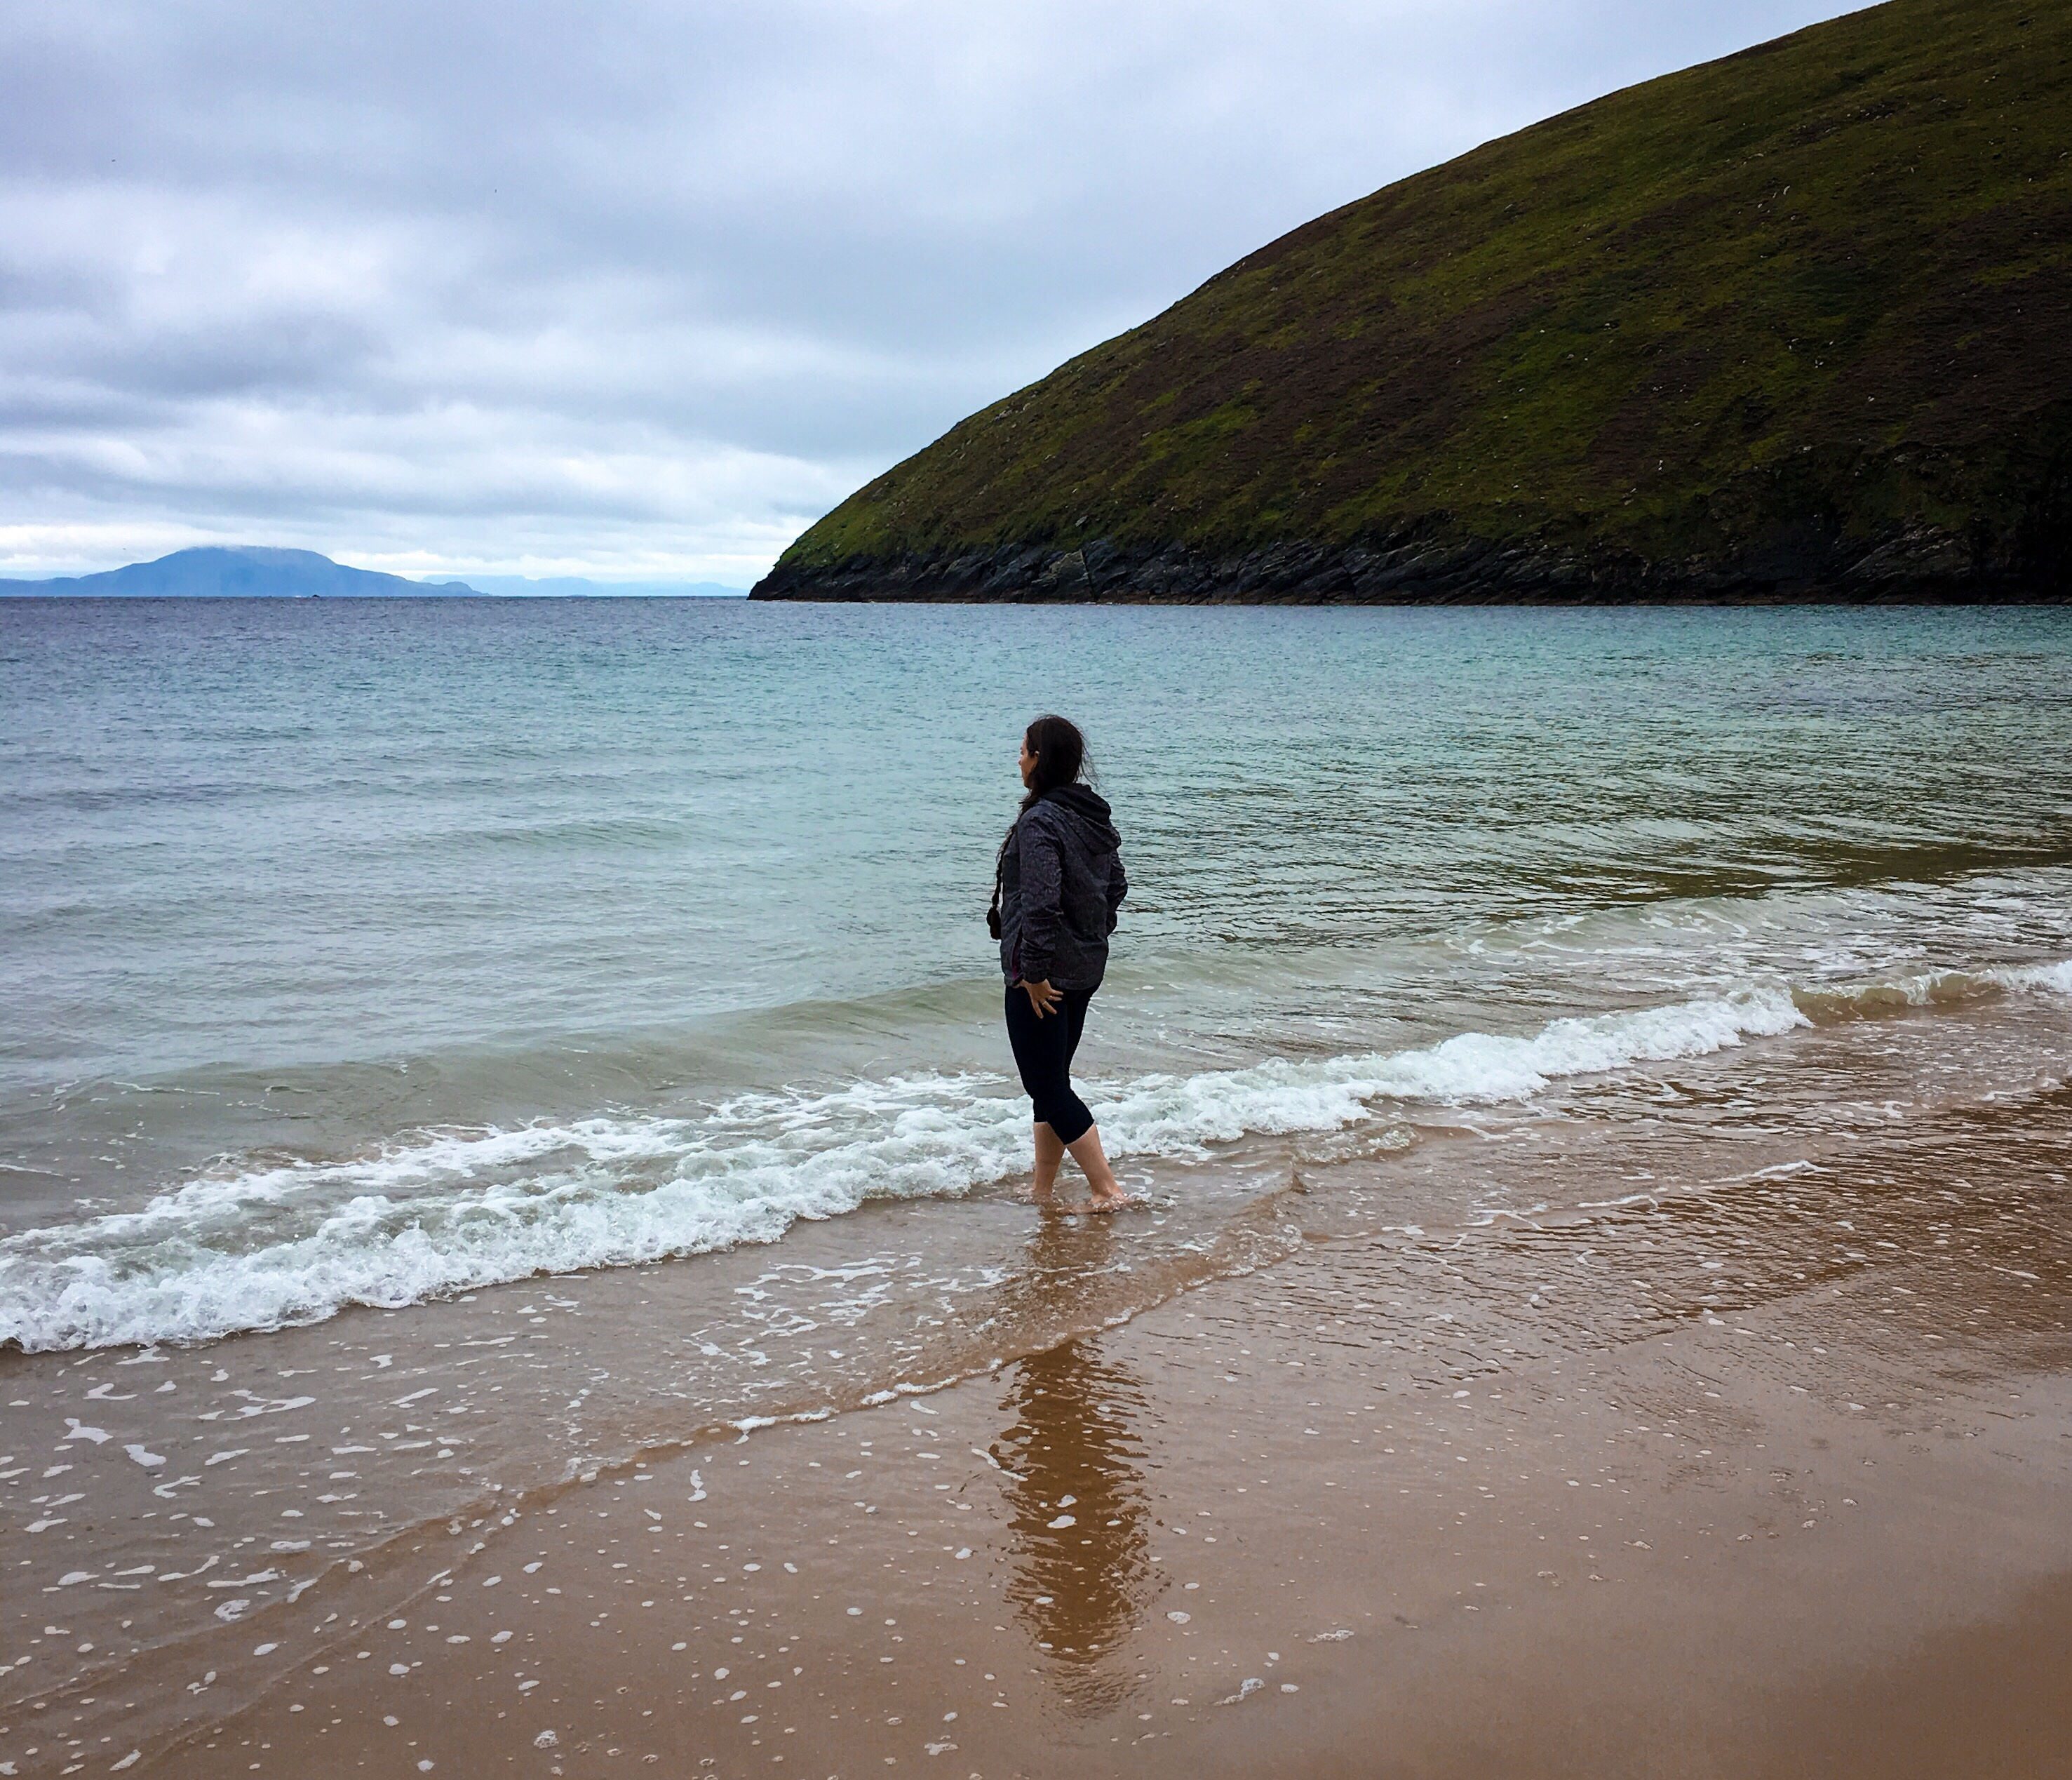 Blythe standing on the beach at Achill Island, Ireland.